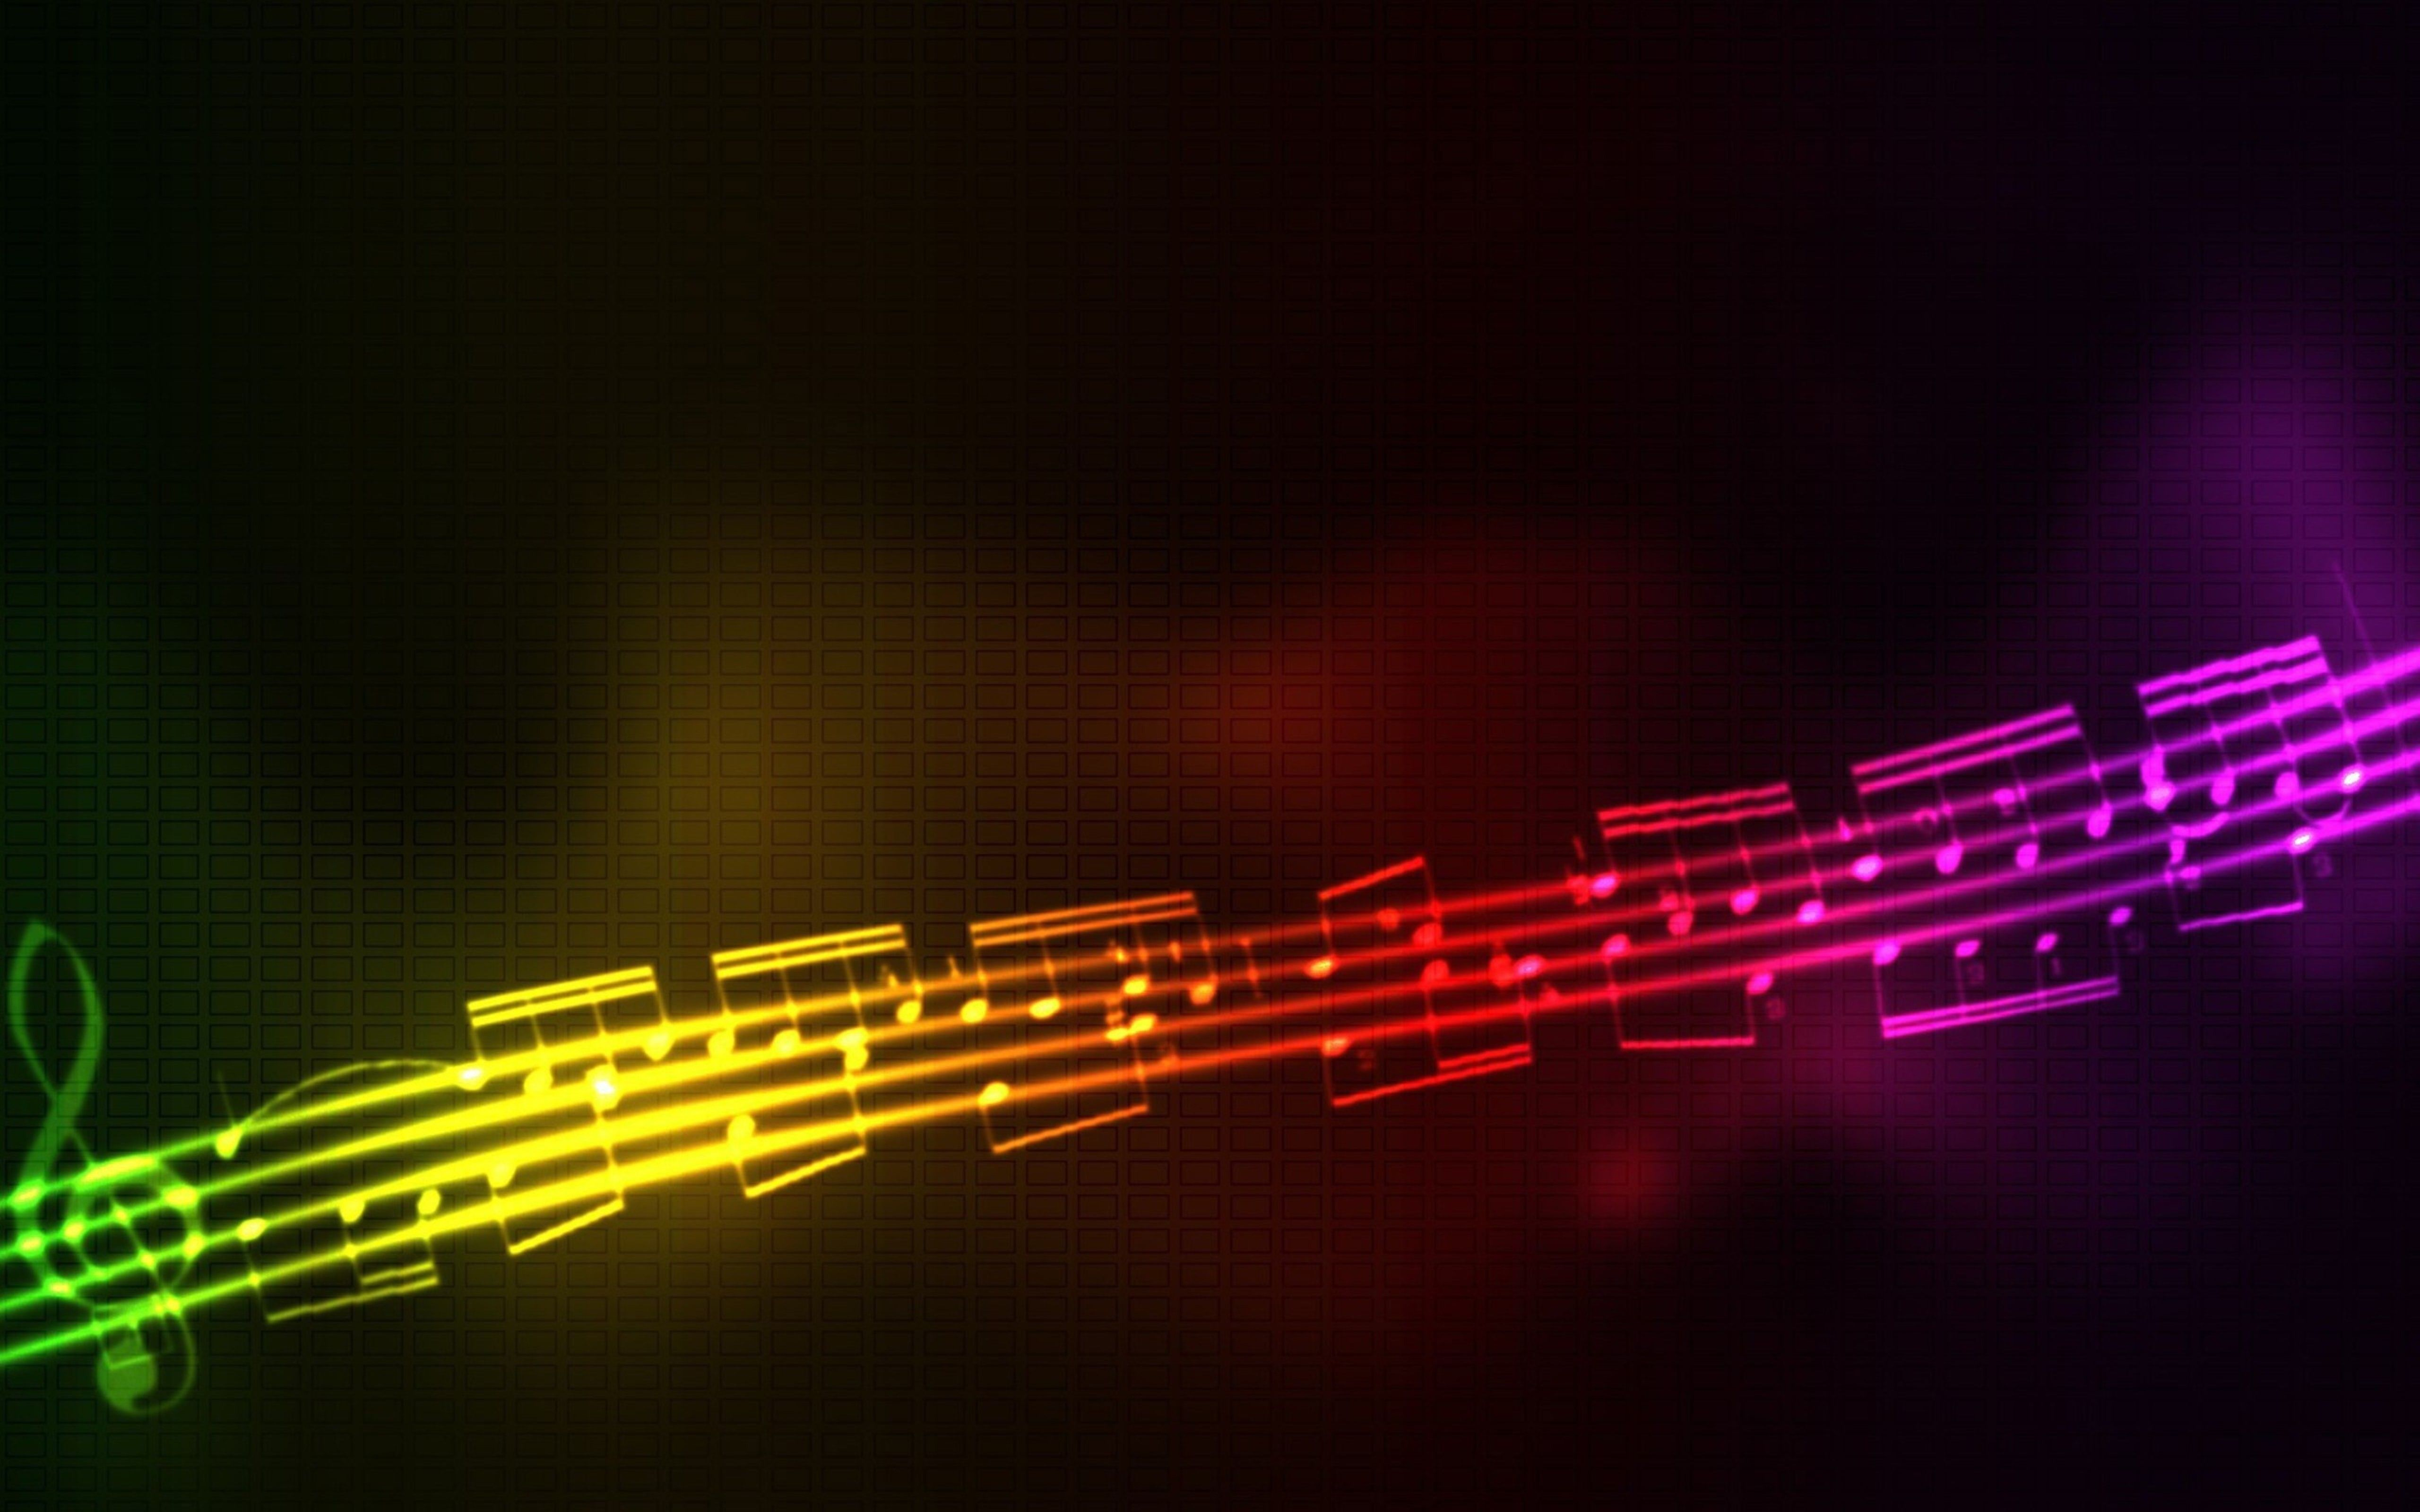 Rainbow Musical Note Music Is Life And Happiness Artistic Wallpaper High Resolution Wallpapers Music Backgrounds